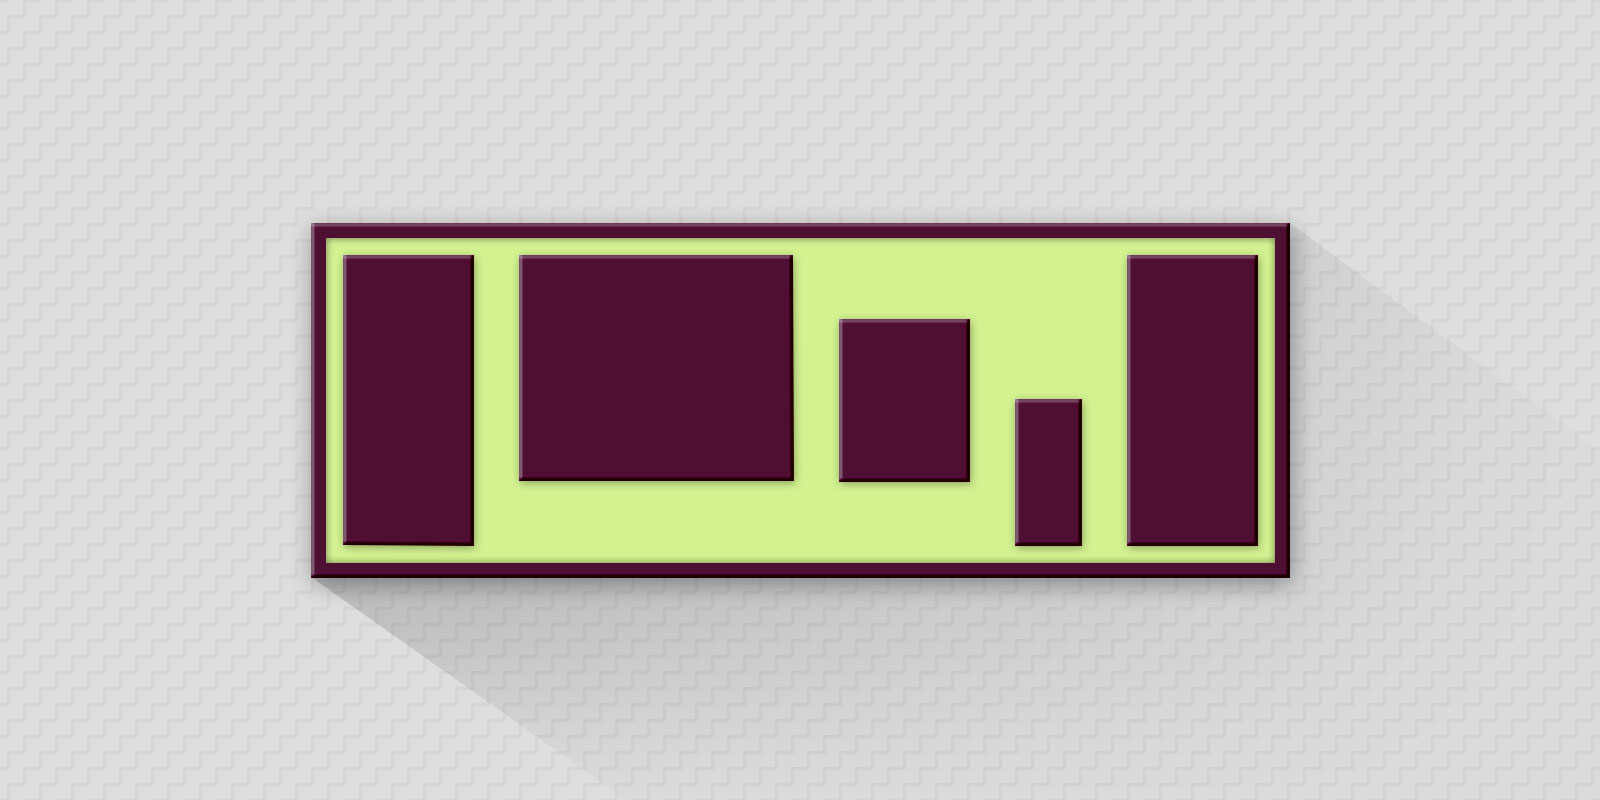 Flexbox positioning